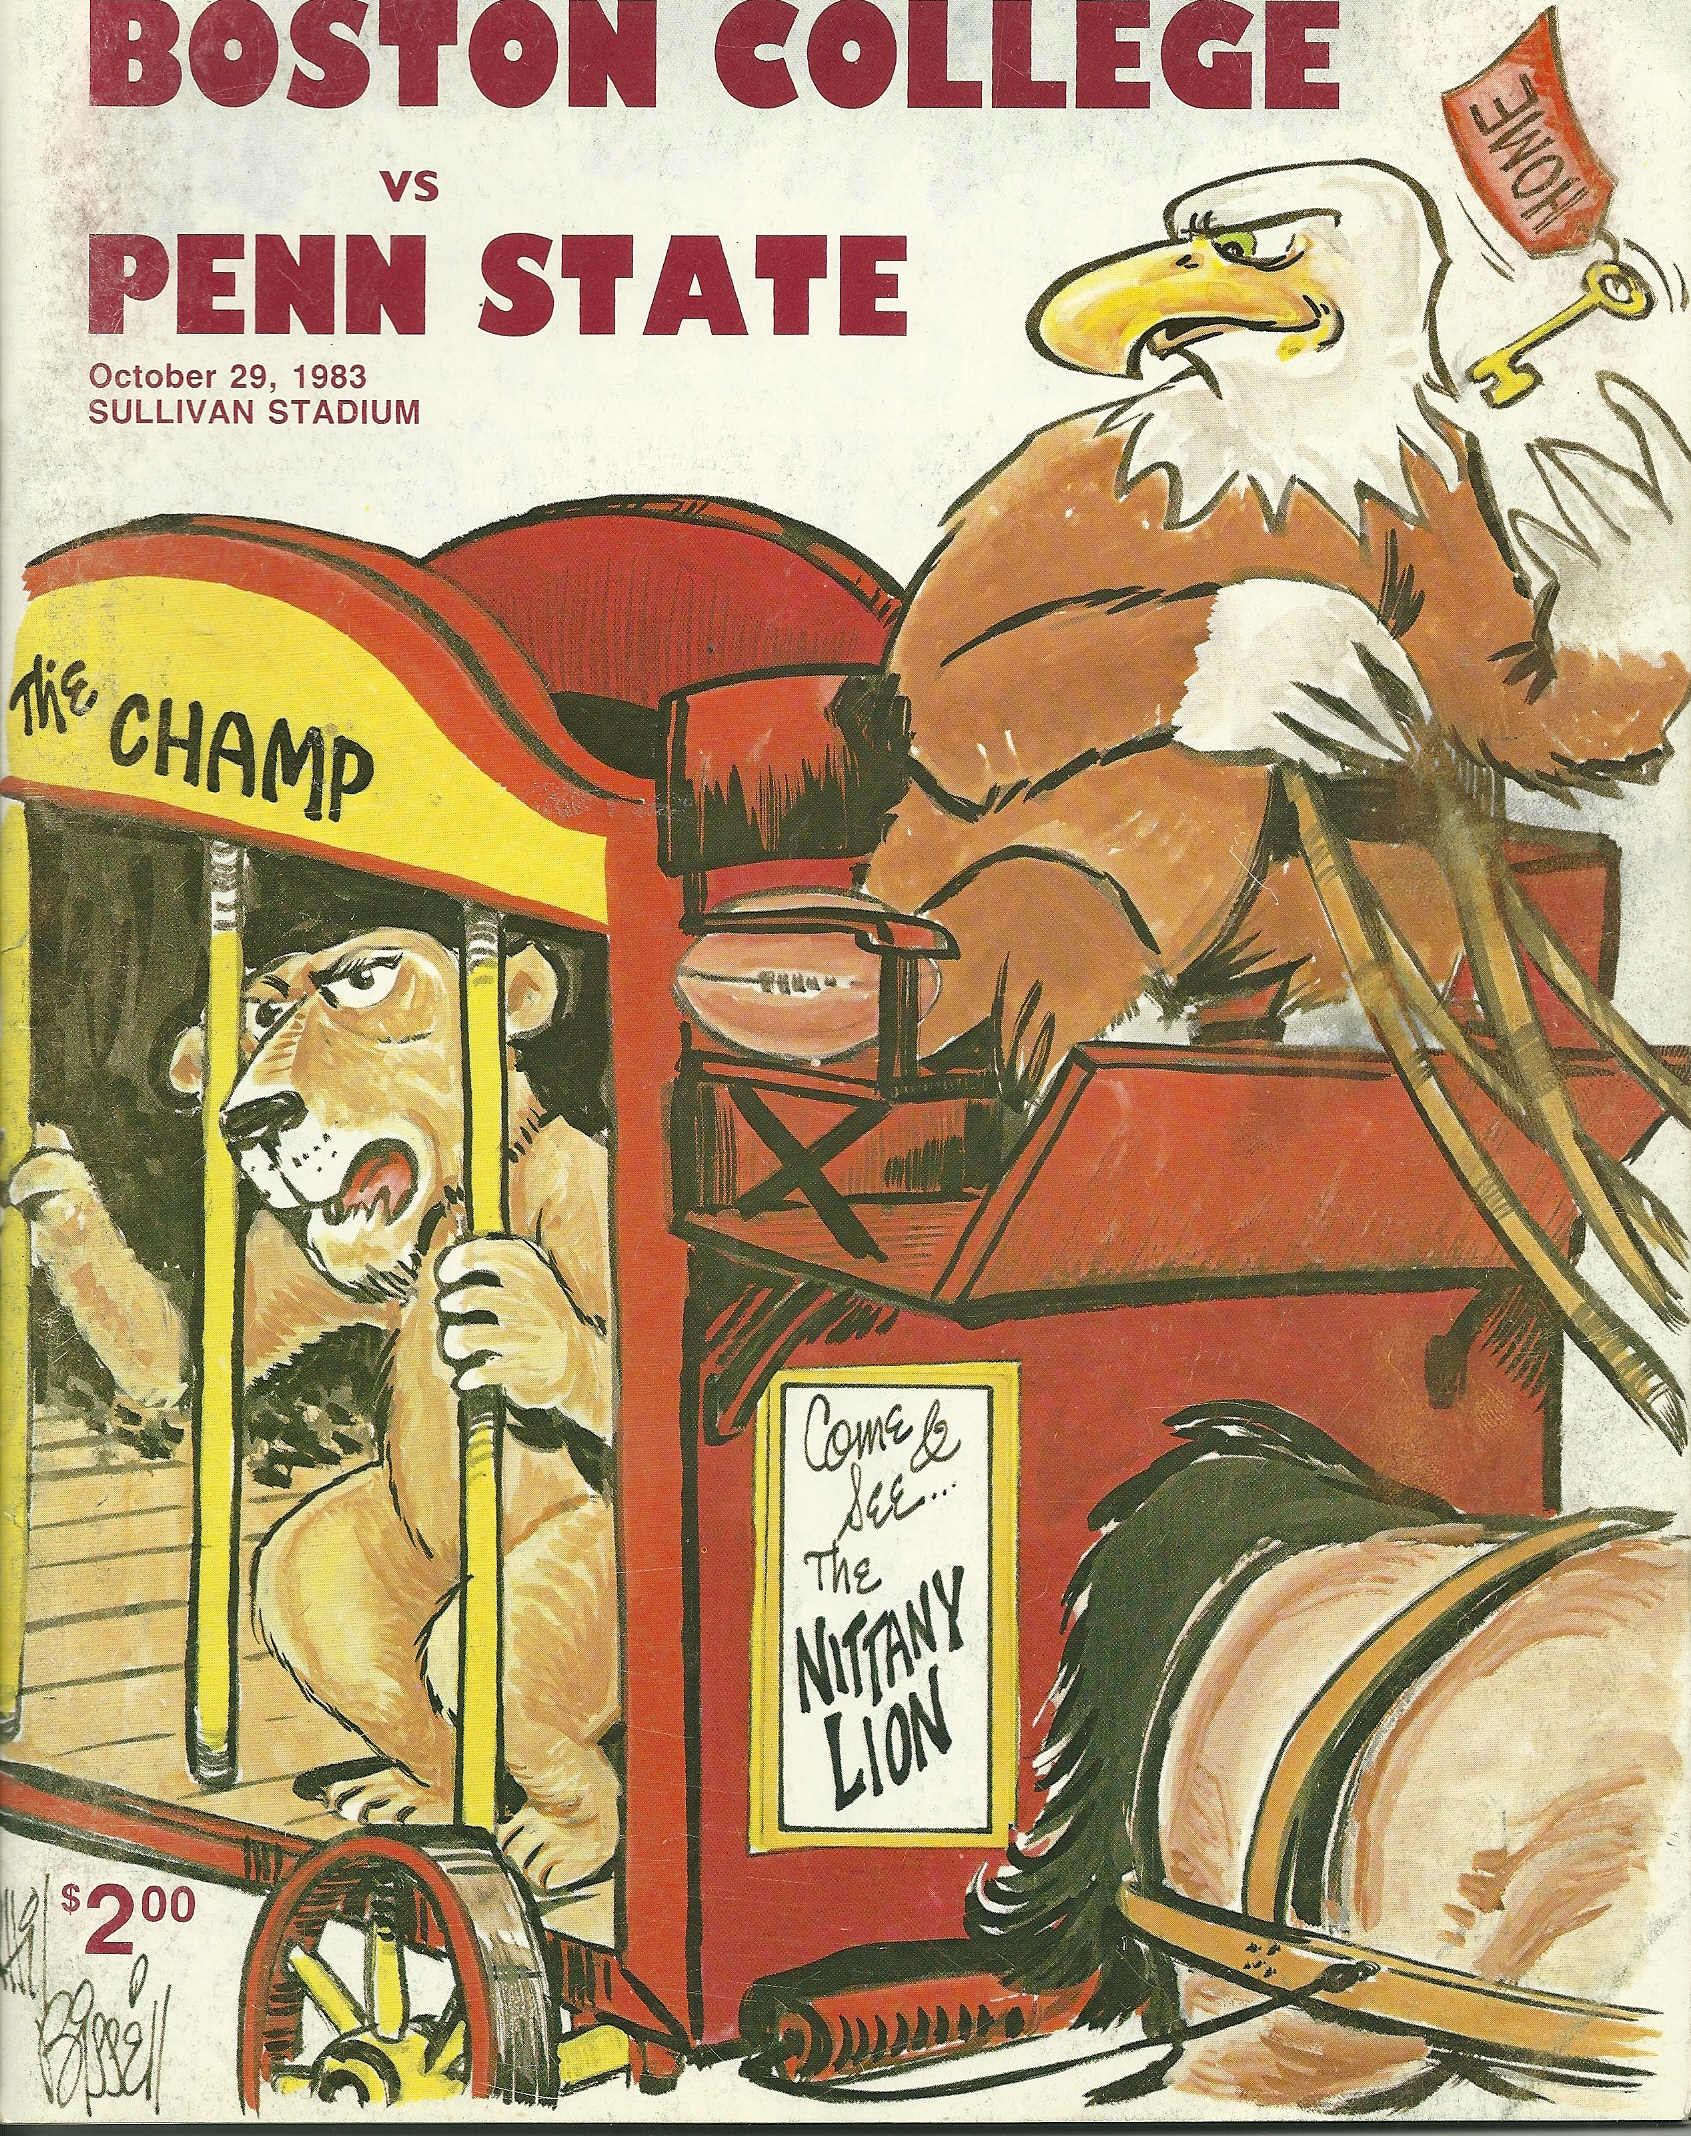 Eagles first ever win over Penn State